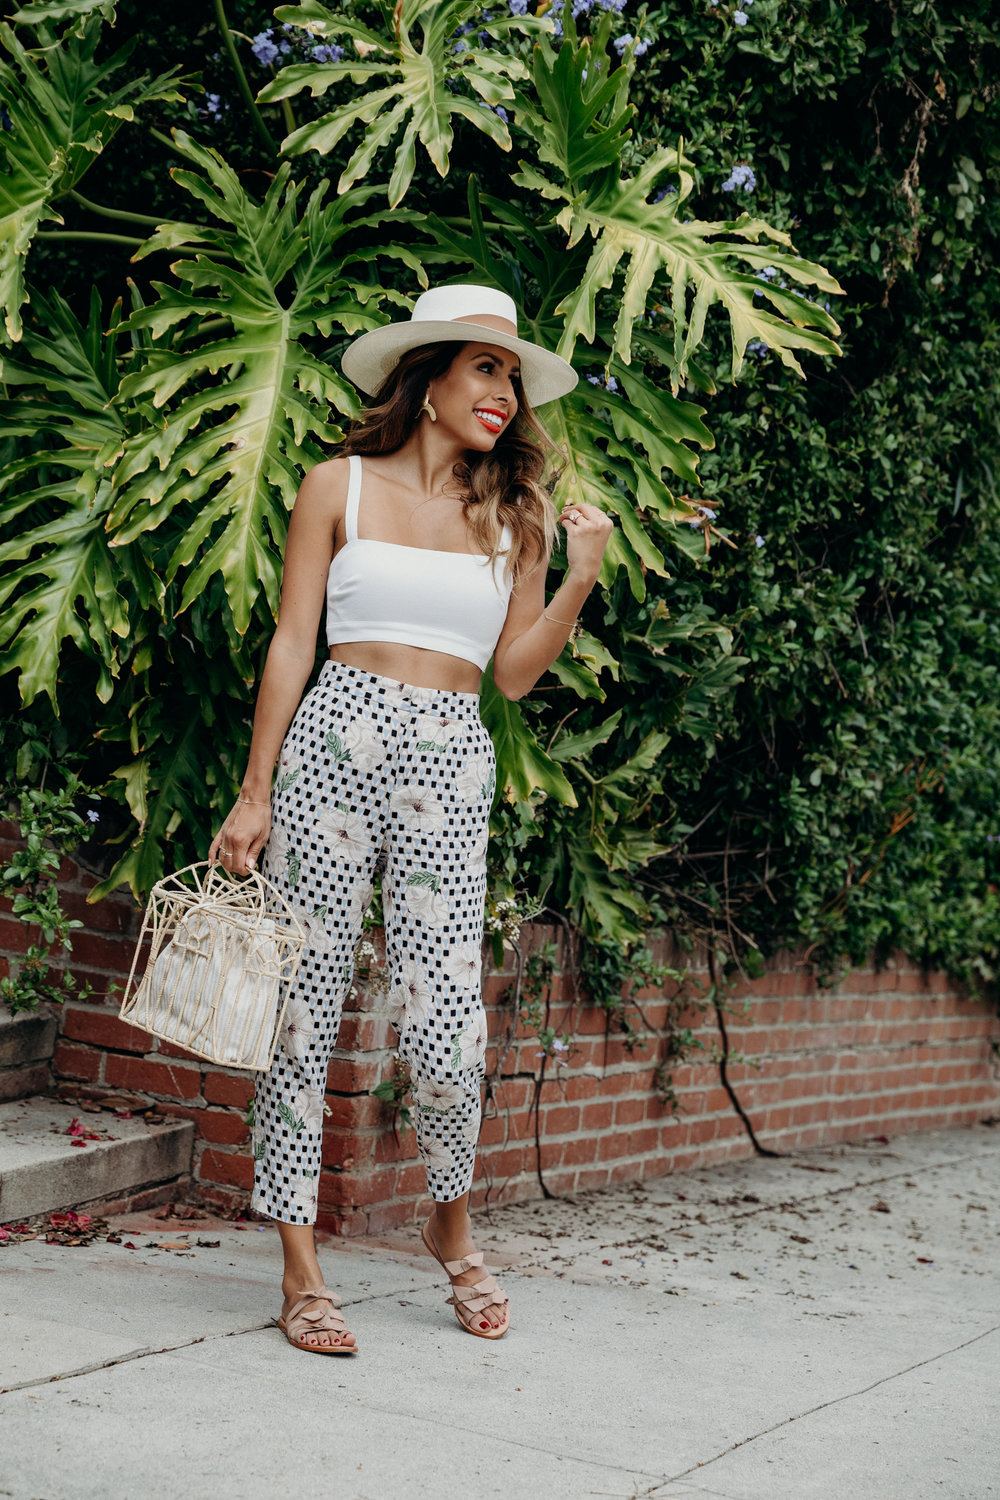 Honeymoon outfit ideas - Belize + Mexico - Sensi Panama Hat - KAANAS Bow sandals